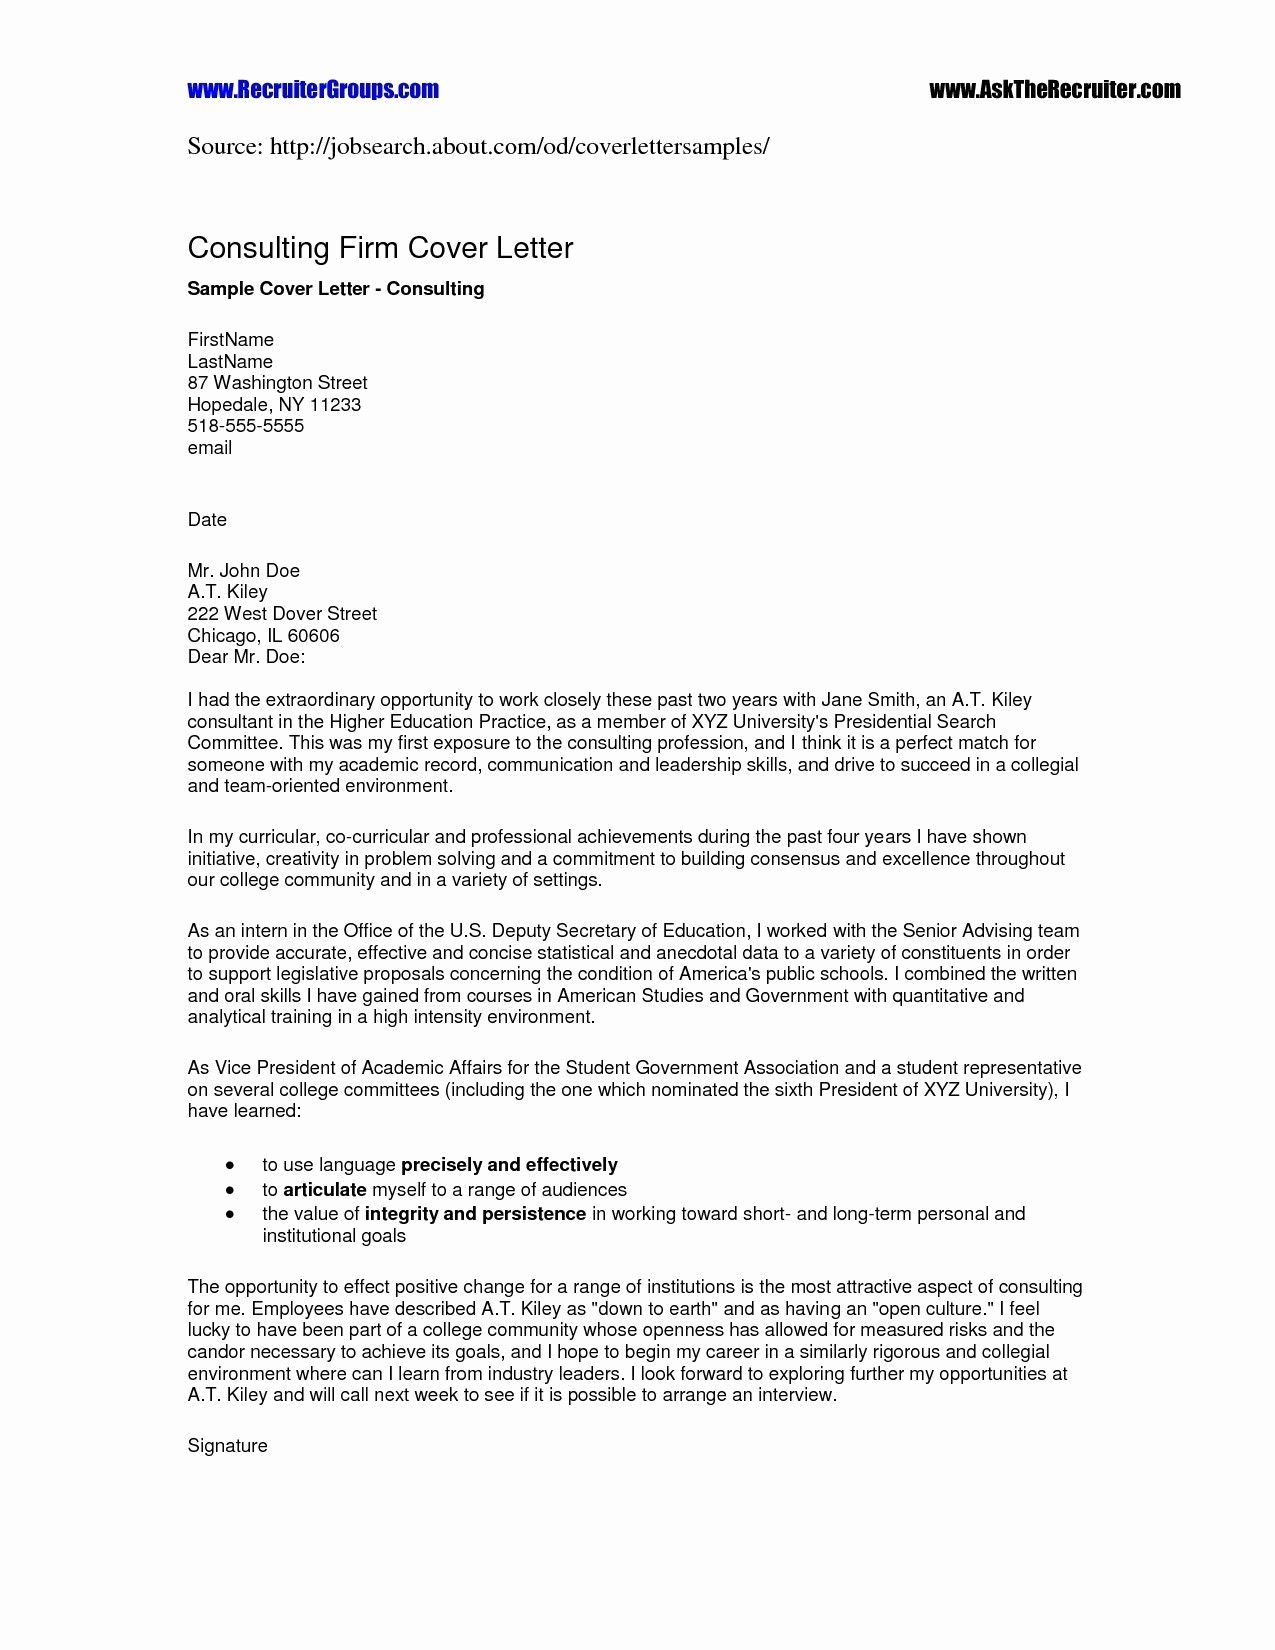 Proof Of Funds Letter Template - Example Email Marketing Letter Unfor Table Unique Sample